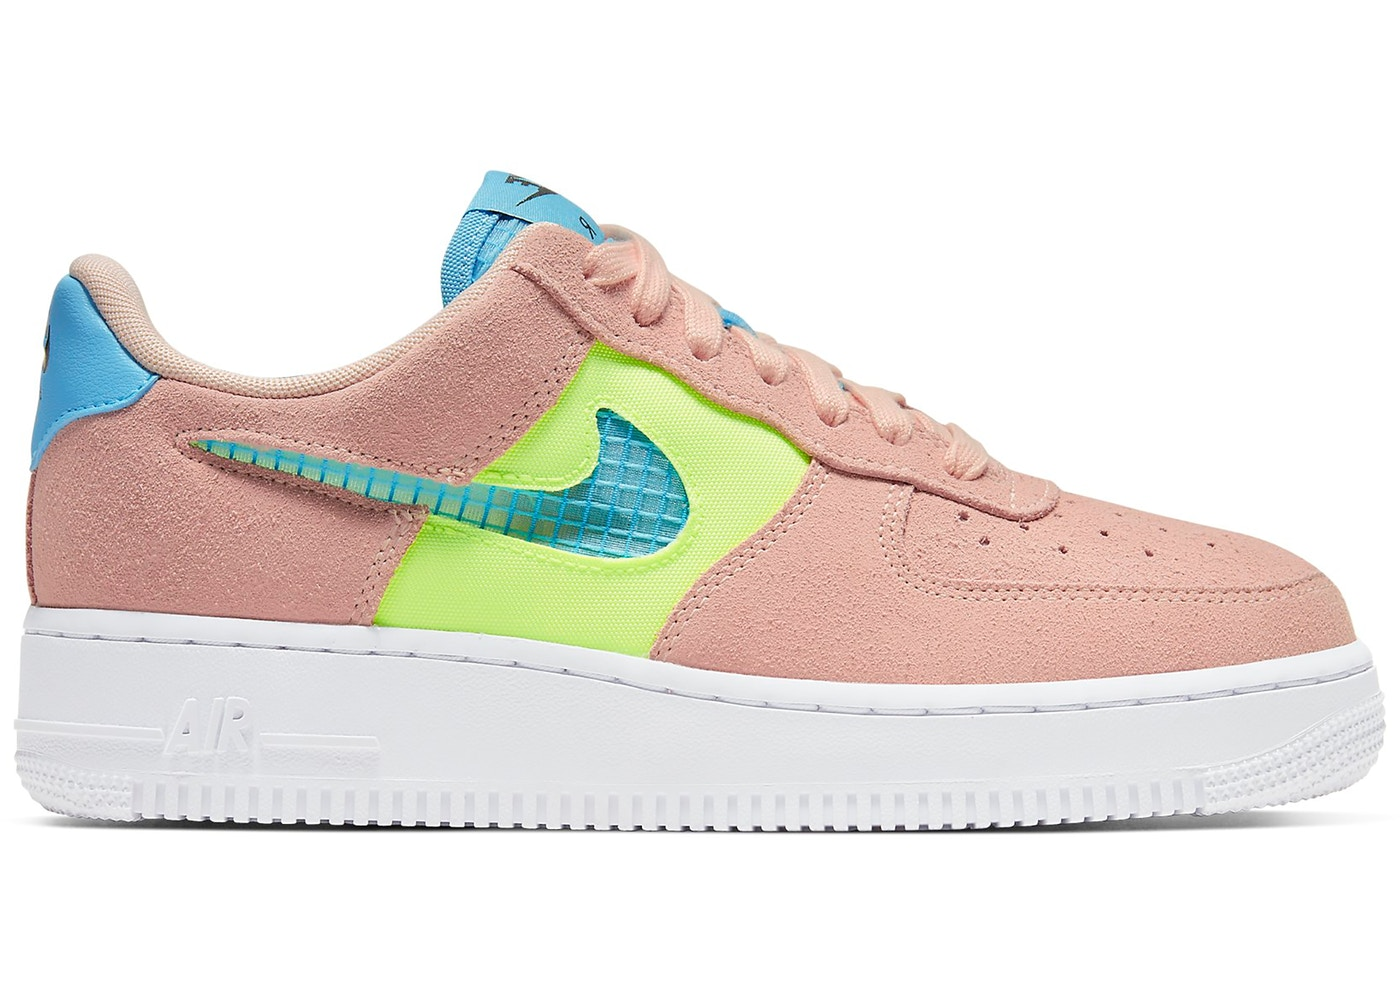 Nike Air Force 1 Low Washed Coral Ghost Green (W)